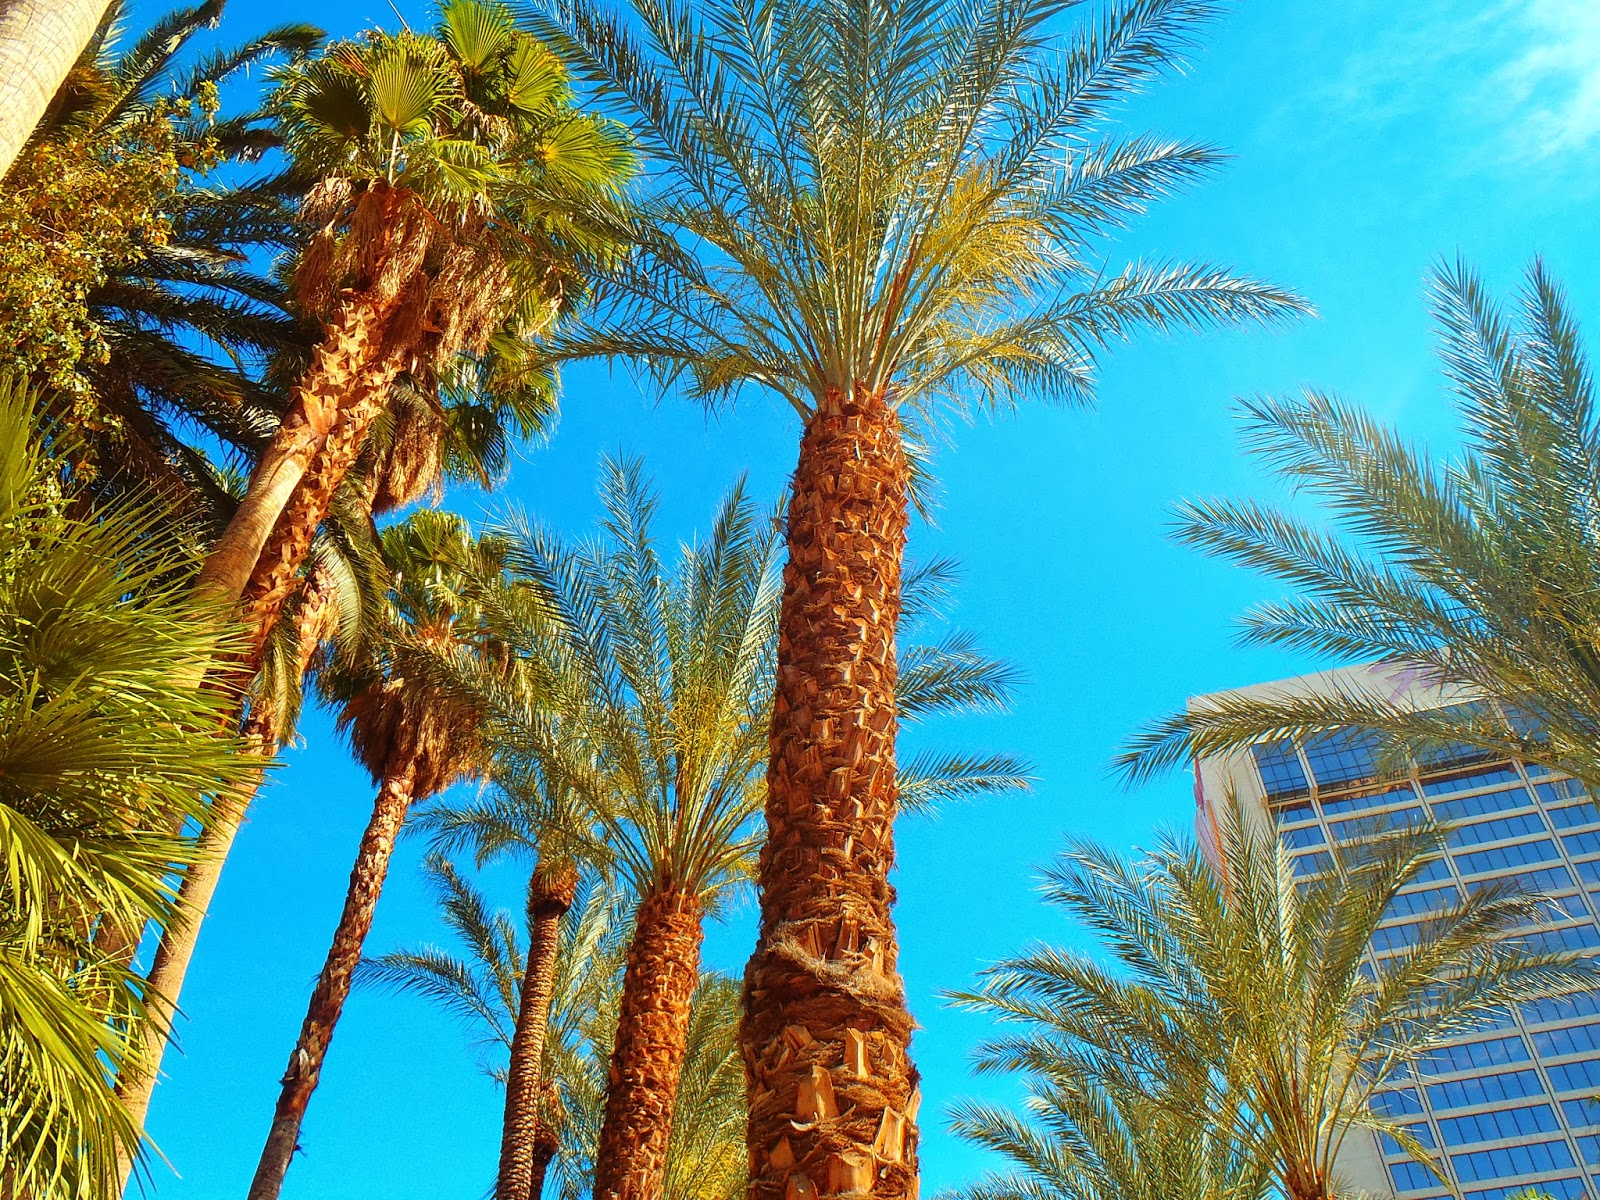 palm trees with blue sky in the background